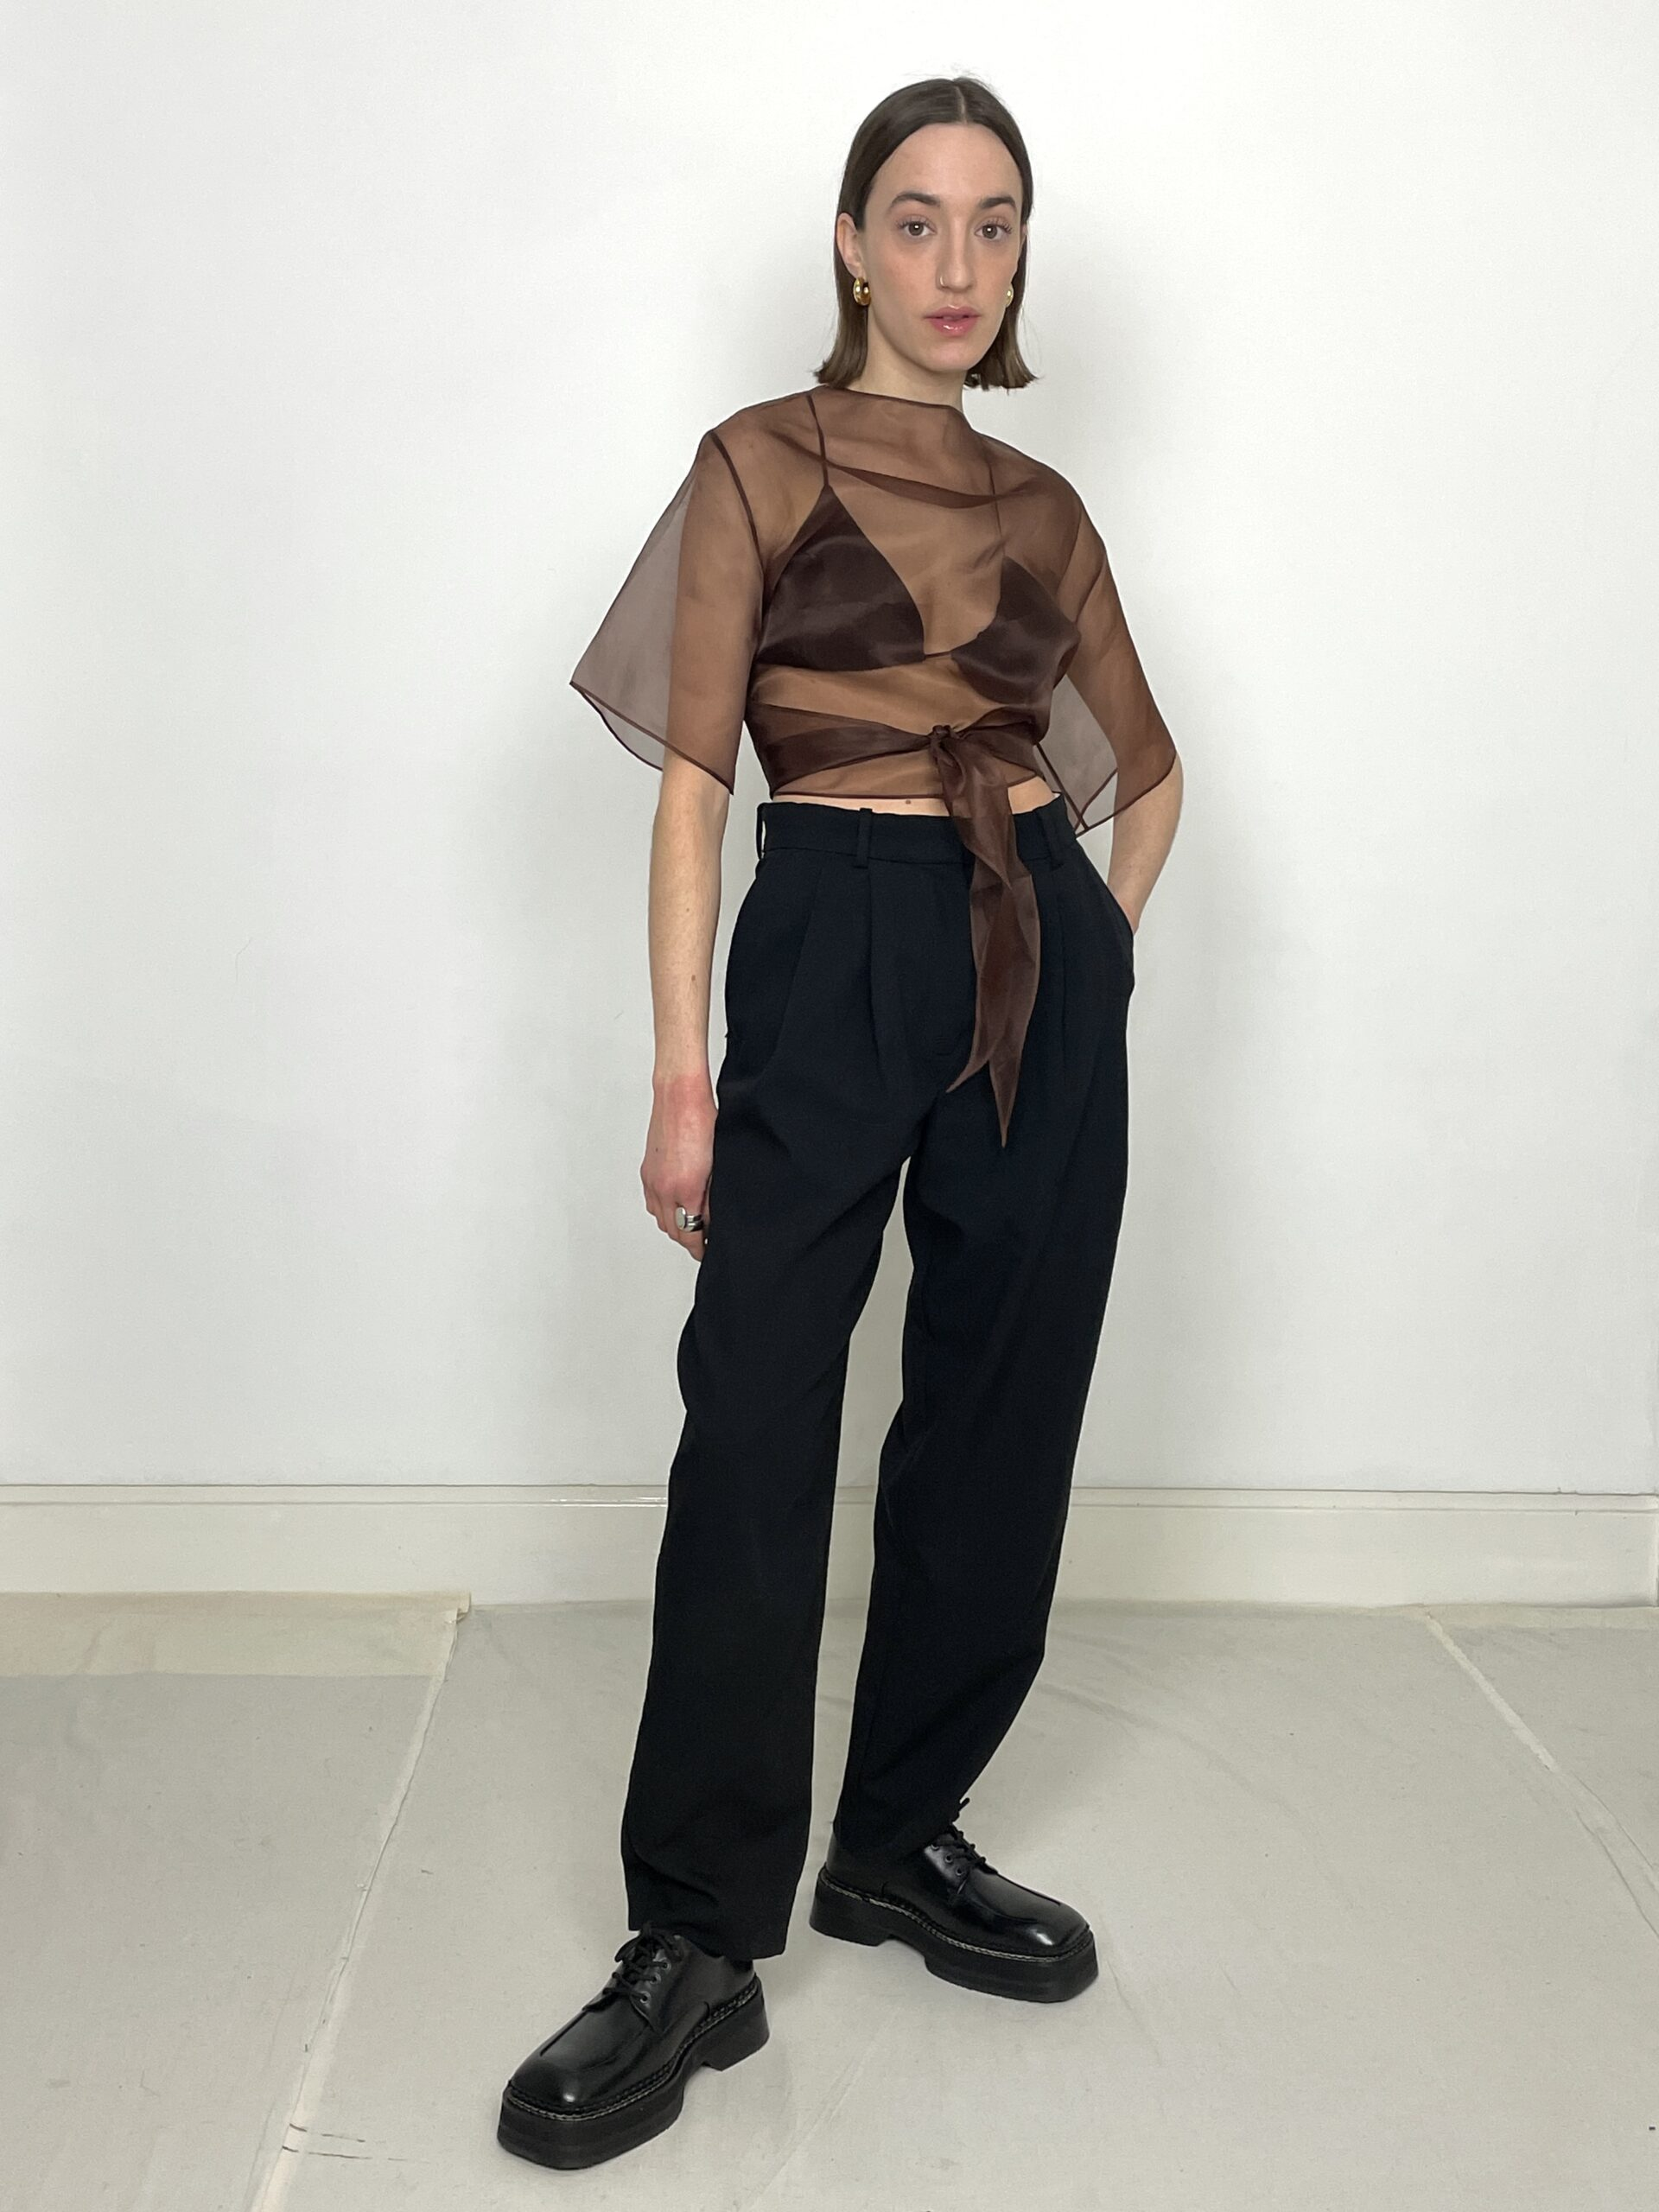 Statement Piory Top Brown